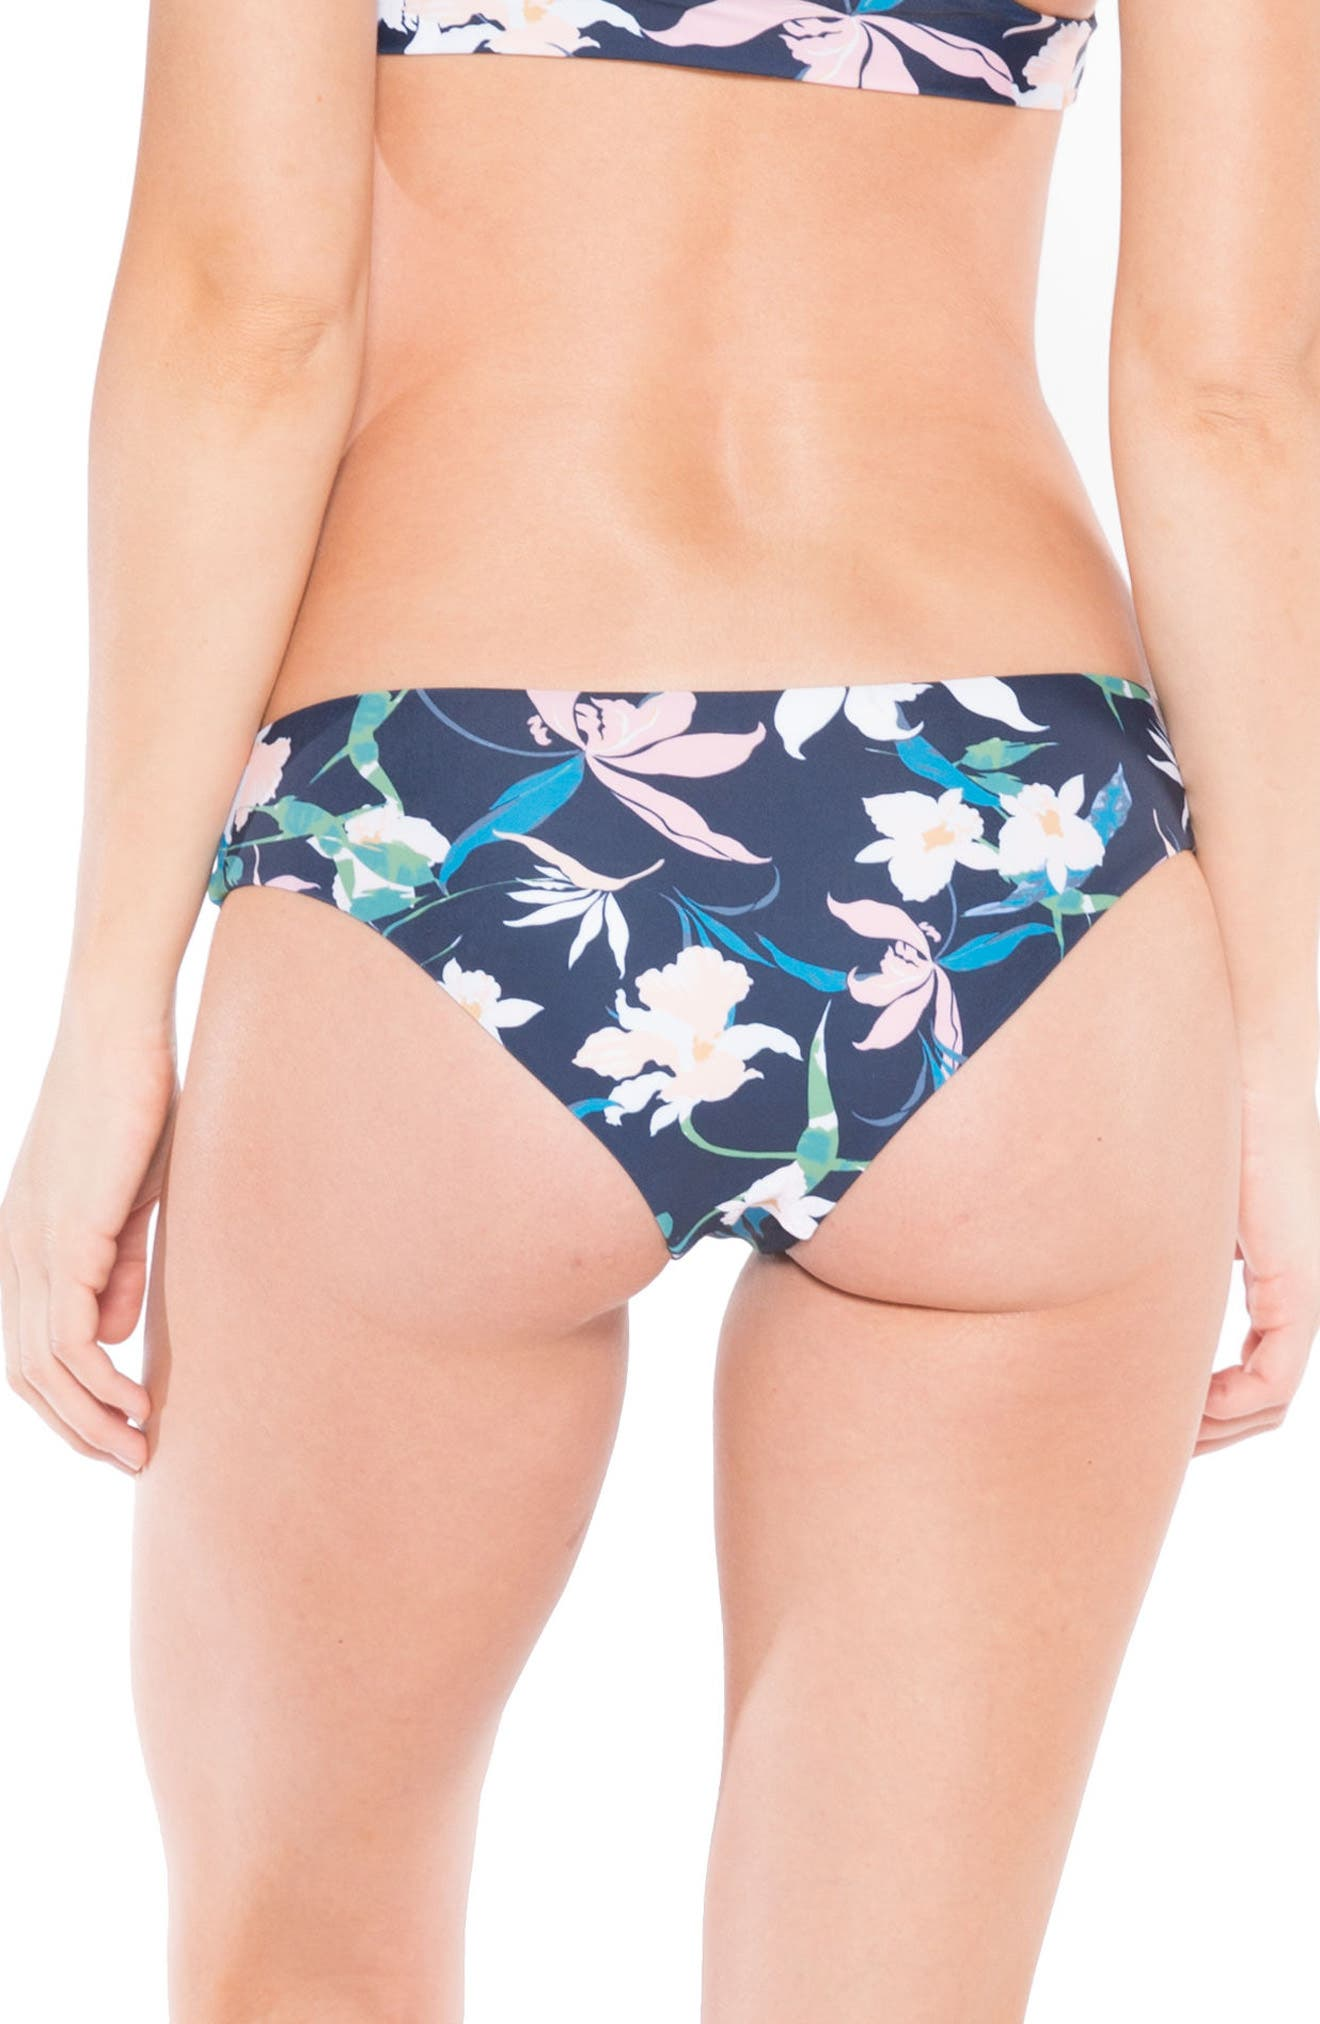 Arlo Hipster Bikini Bottoms,                             Alternate thumbnail 2, color,